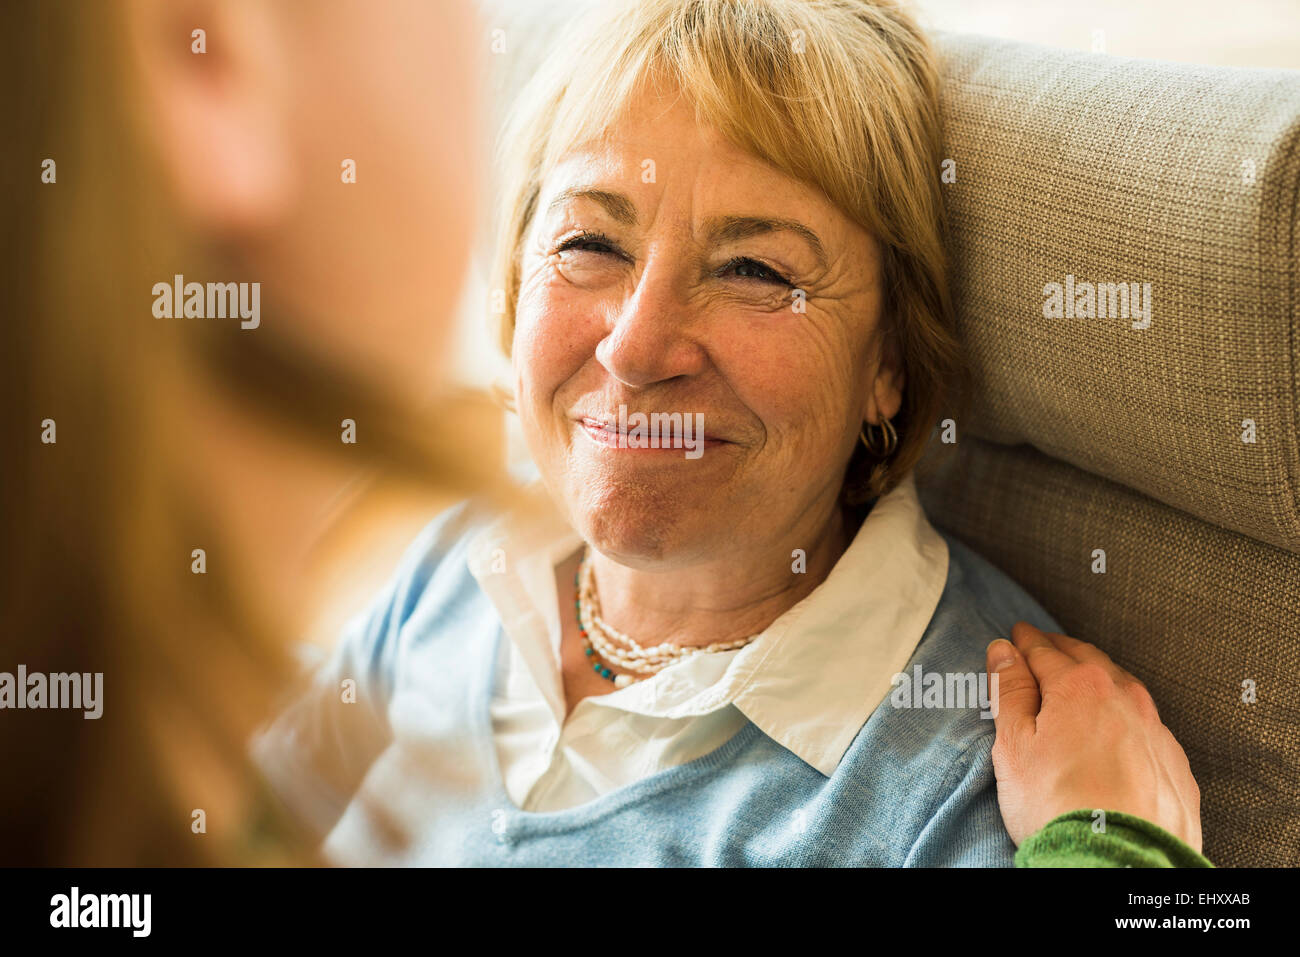 Smiling grandmother looking at adult granddaughter - Stock Image